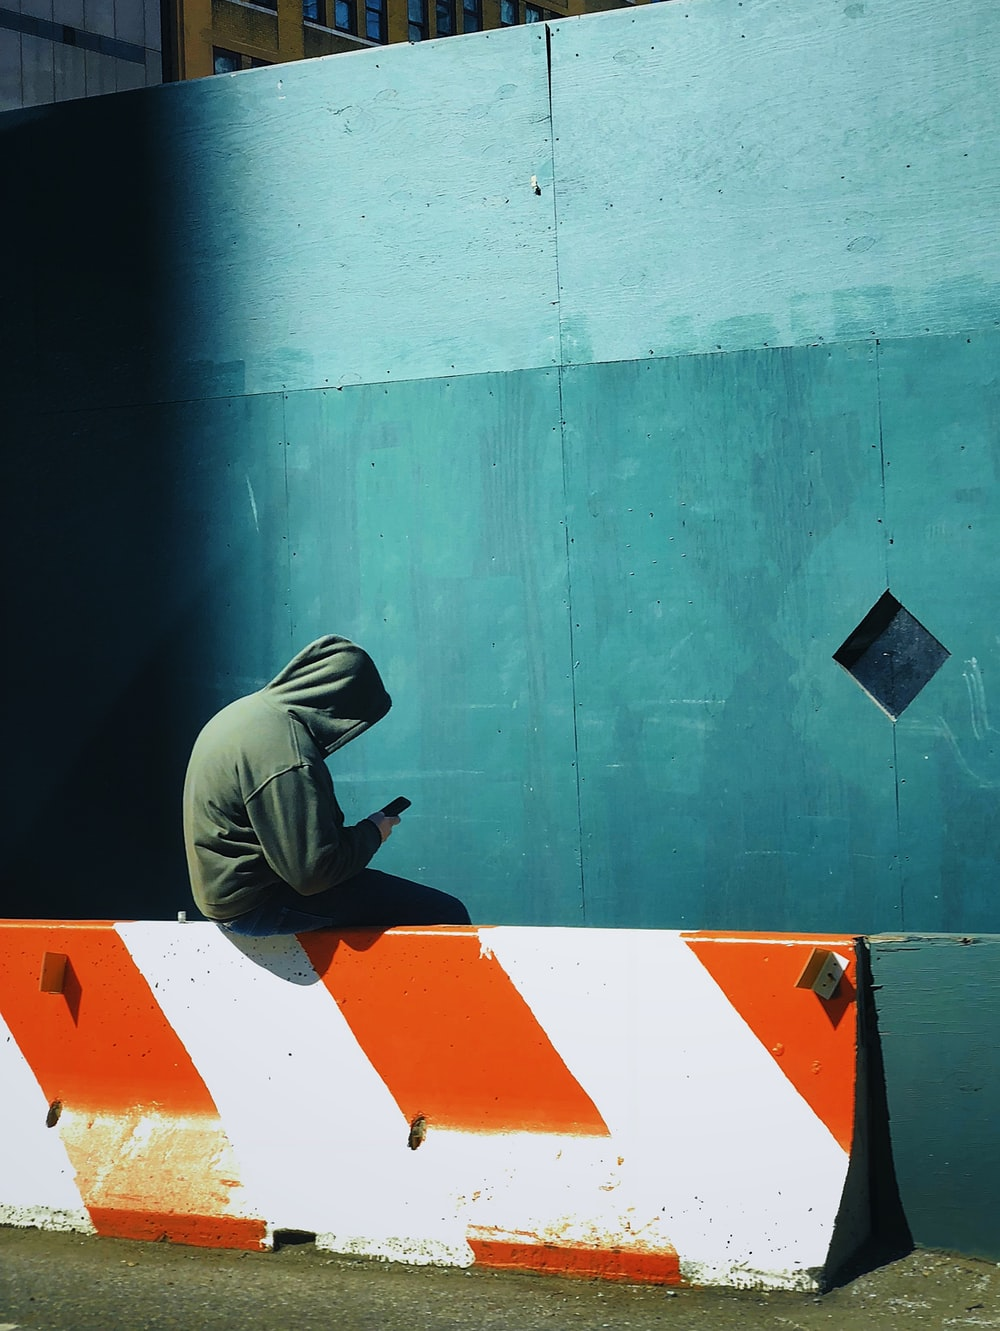 person in hooded jacket using smartphone